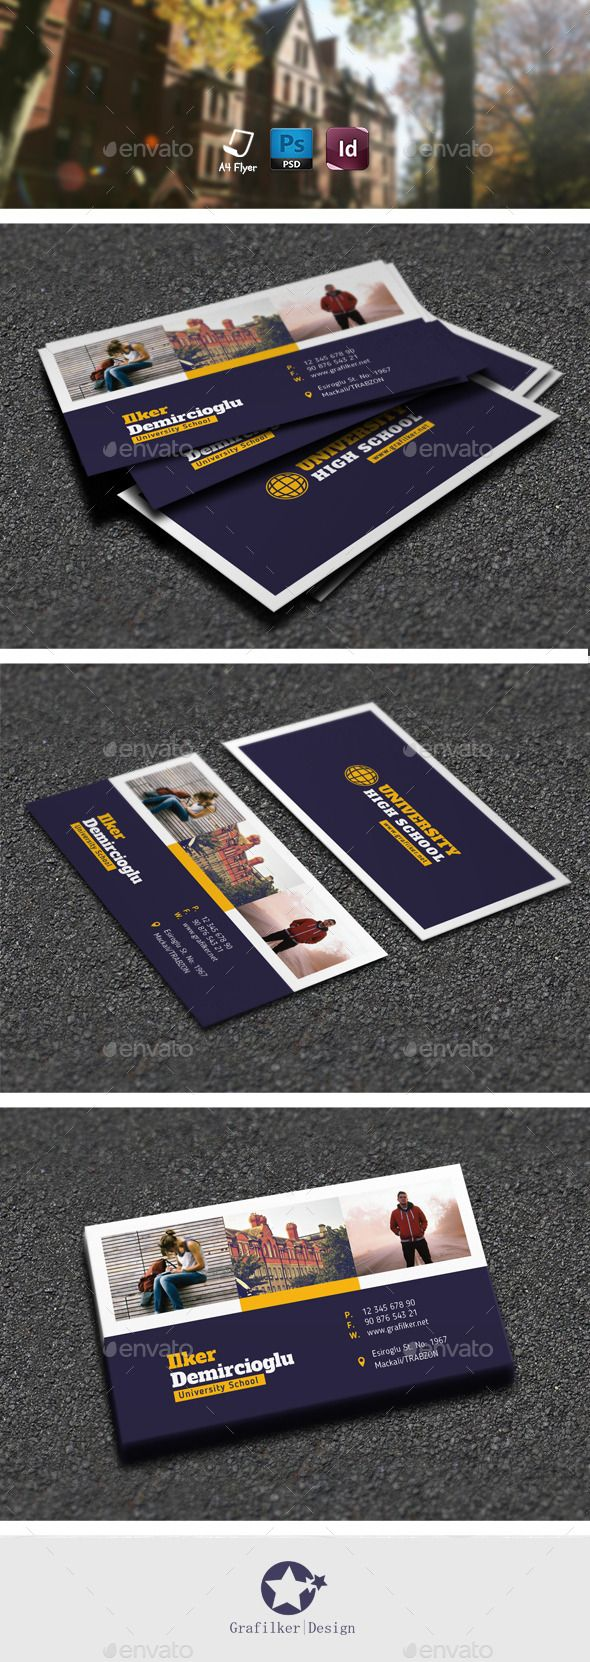 Best Business Card Templates Design Images On Pinterest - Business card template psd download